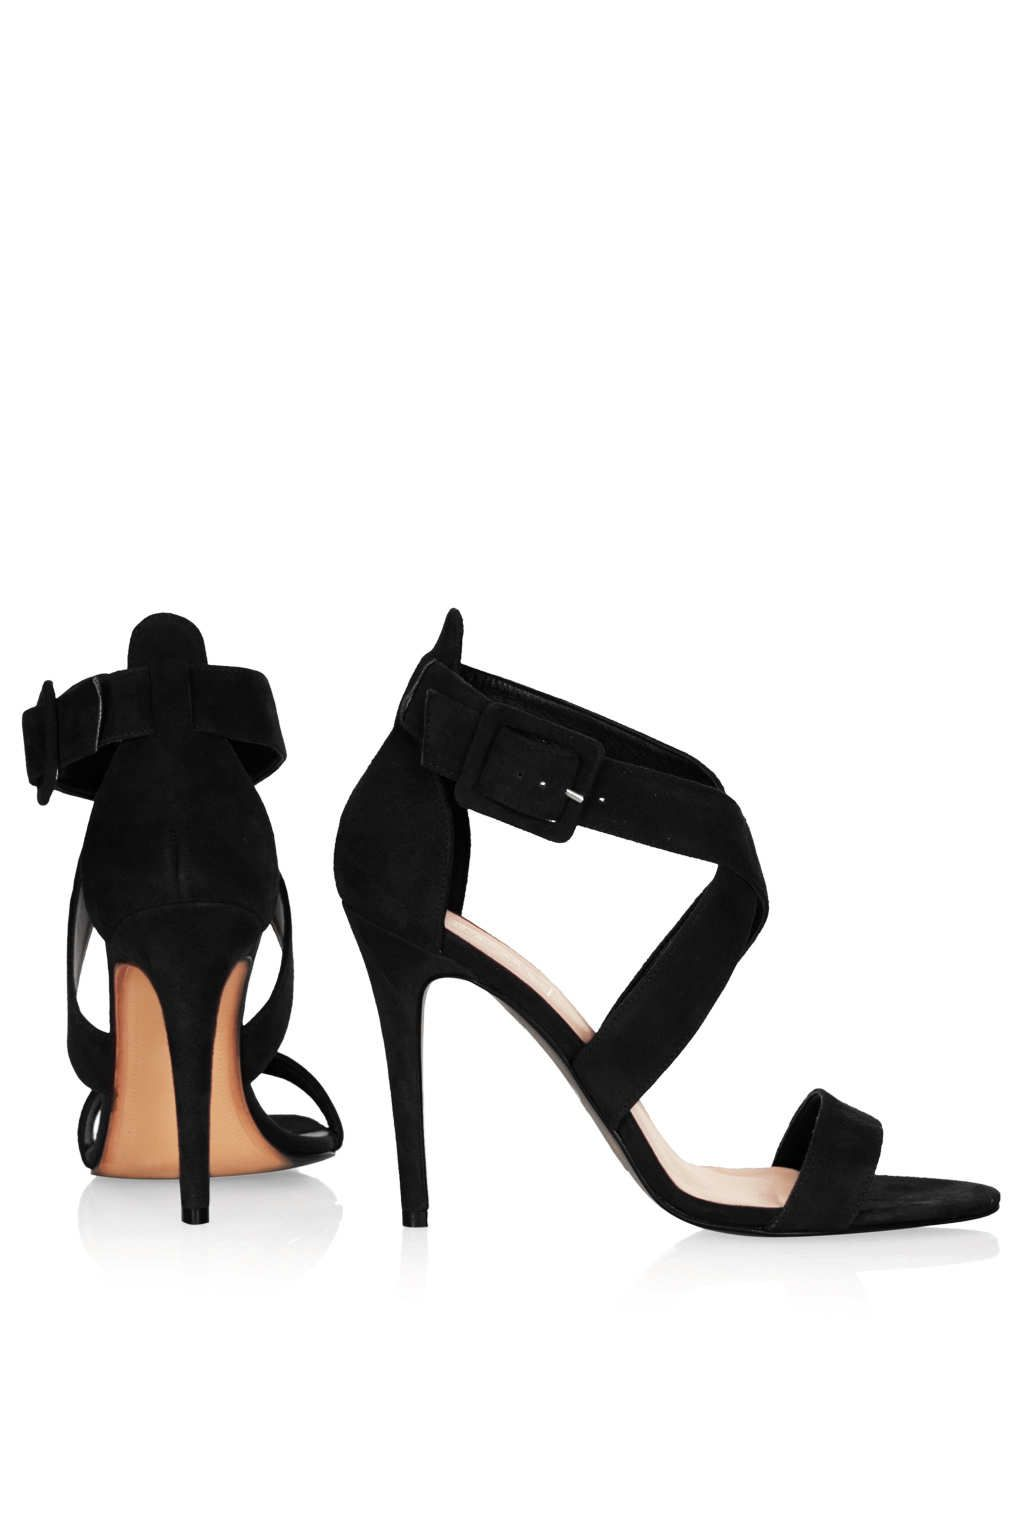 Topshop Rustle Suede Strappy Sandals in Black | Lyst